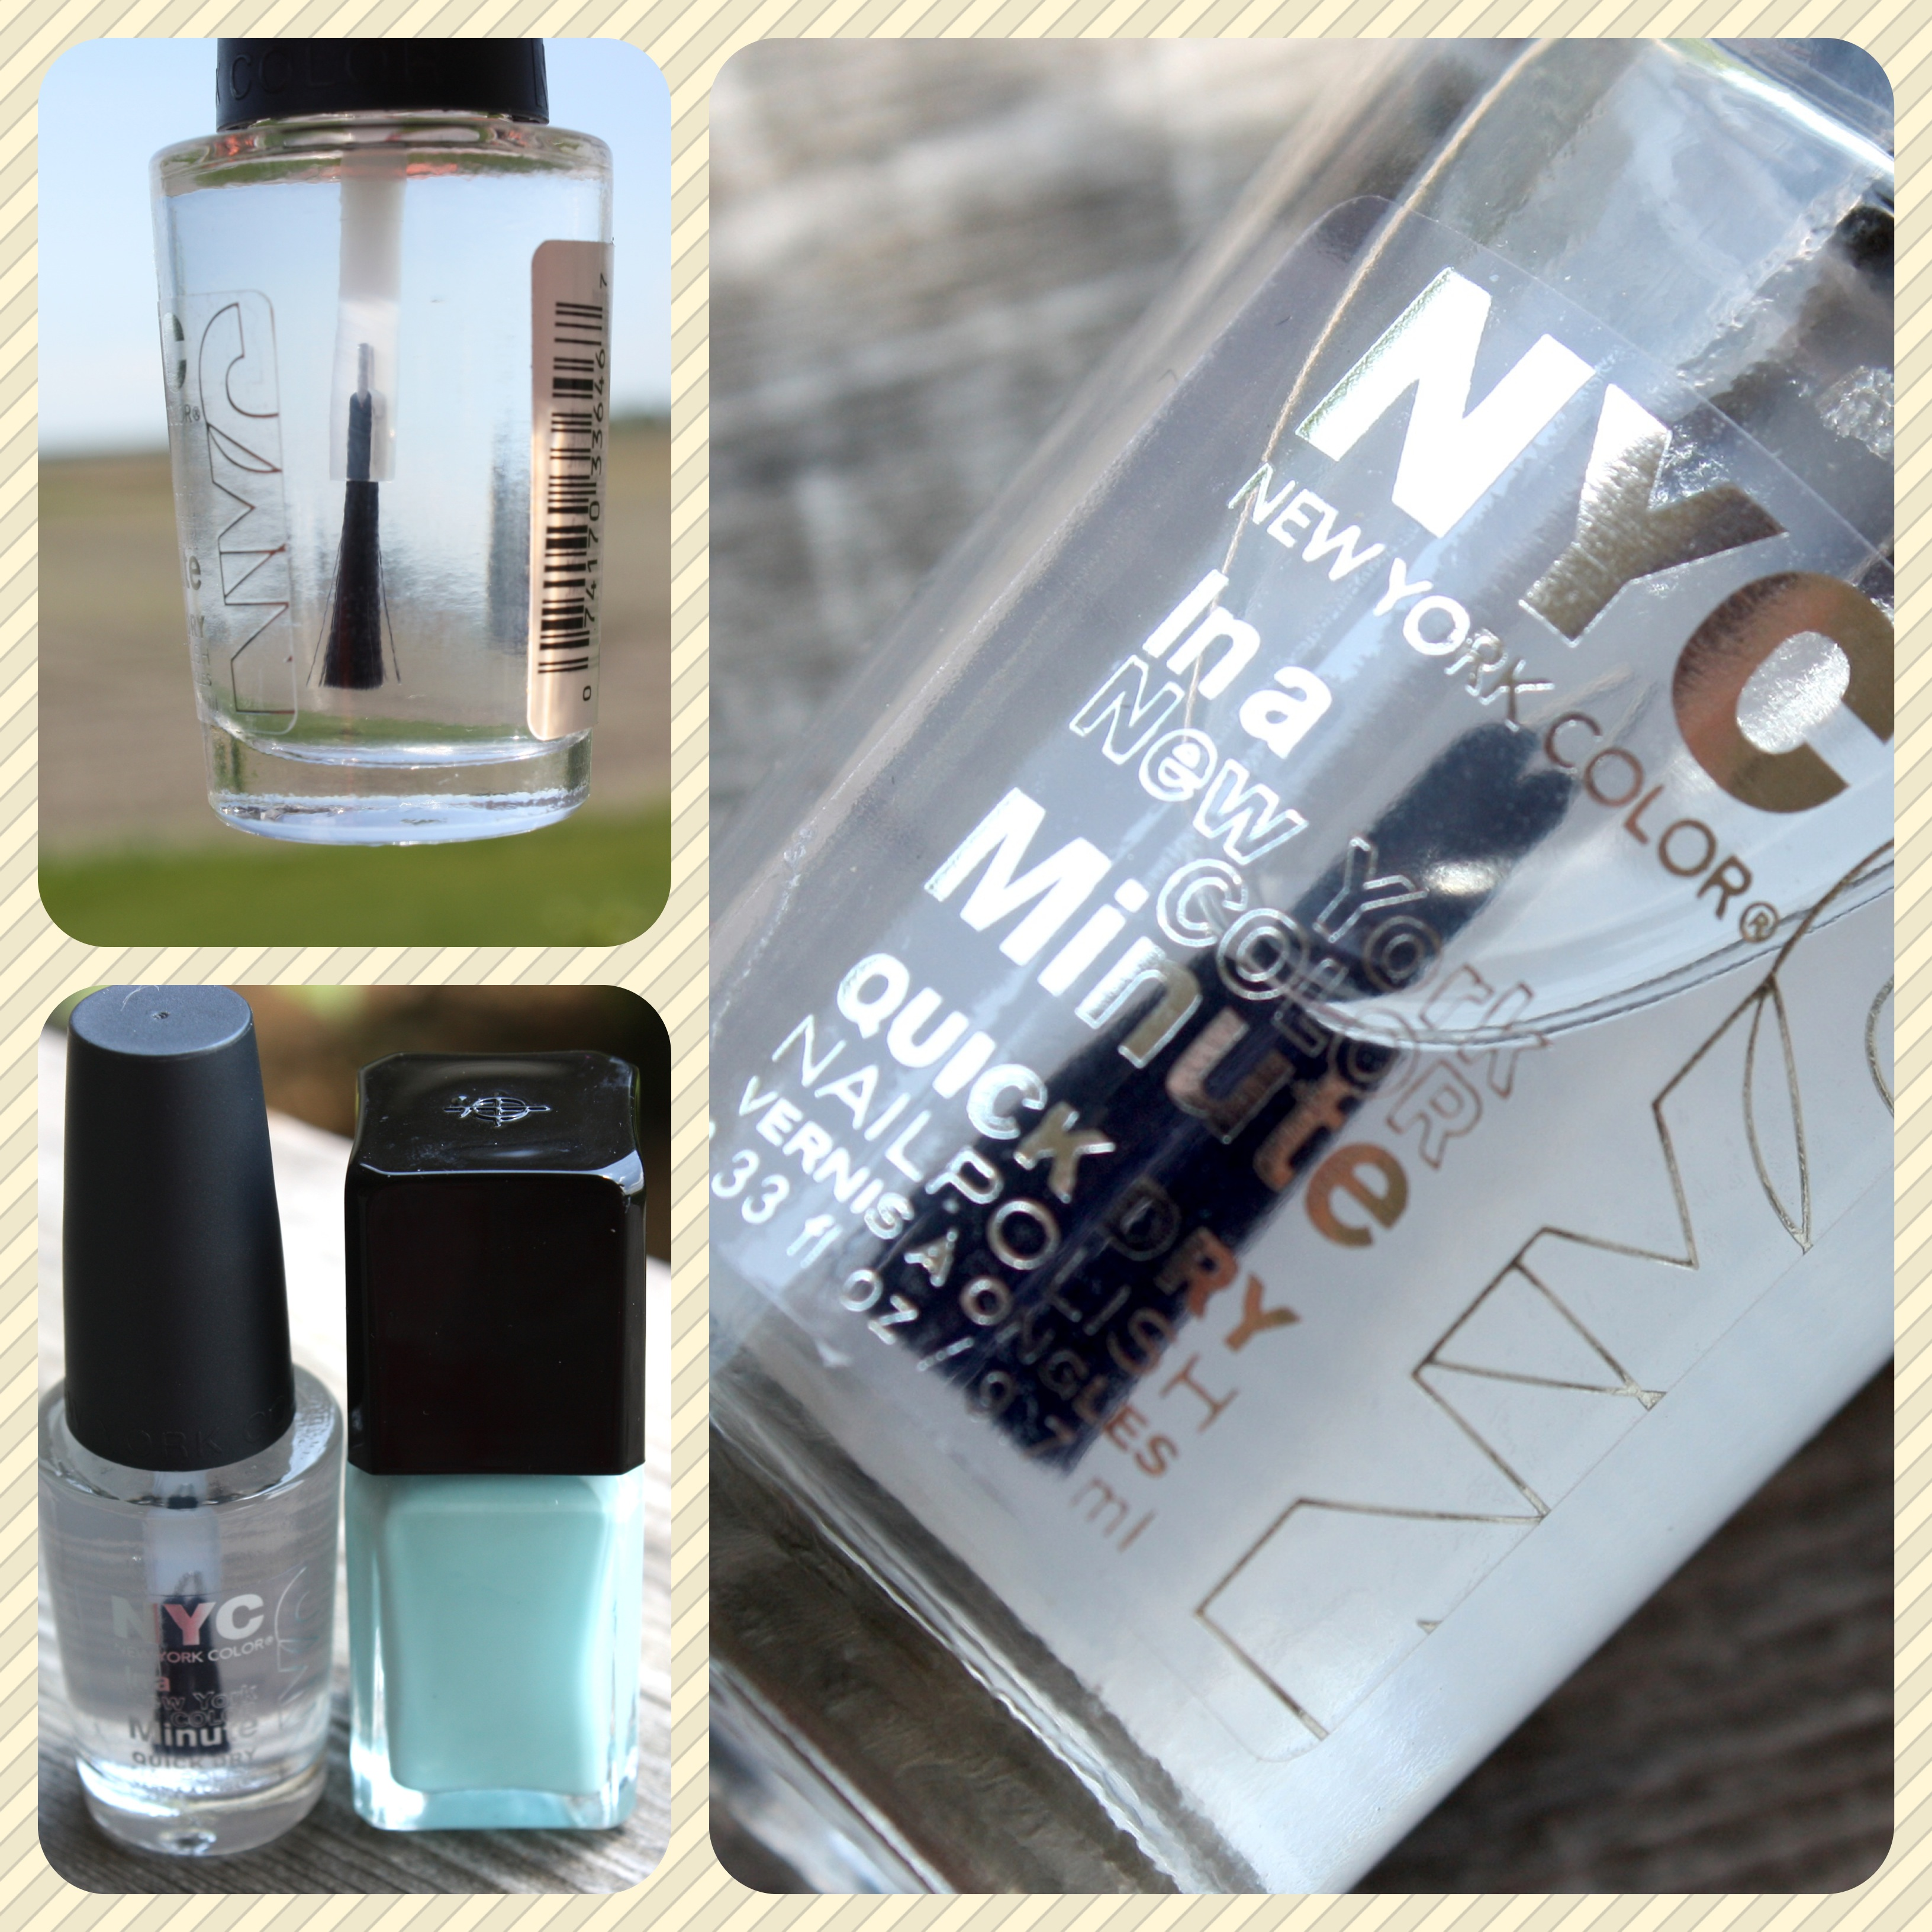 NYC In A New York Minute Quick Dry Top Coat Review – horrendous color